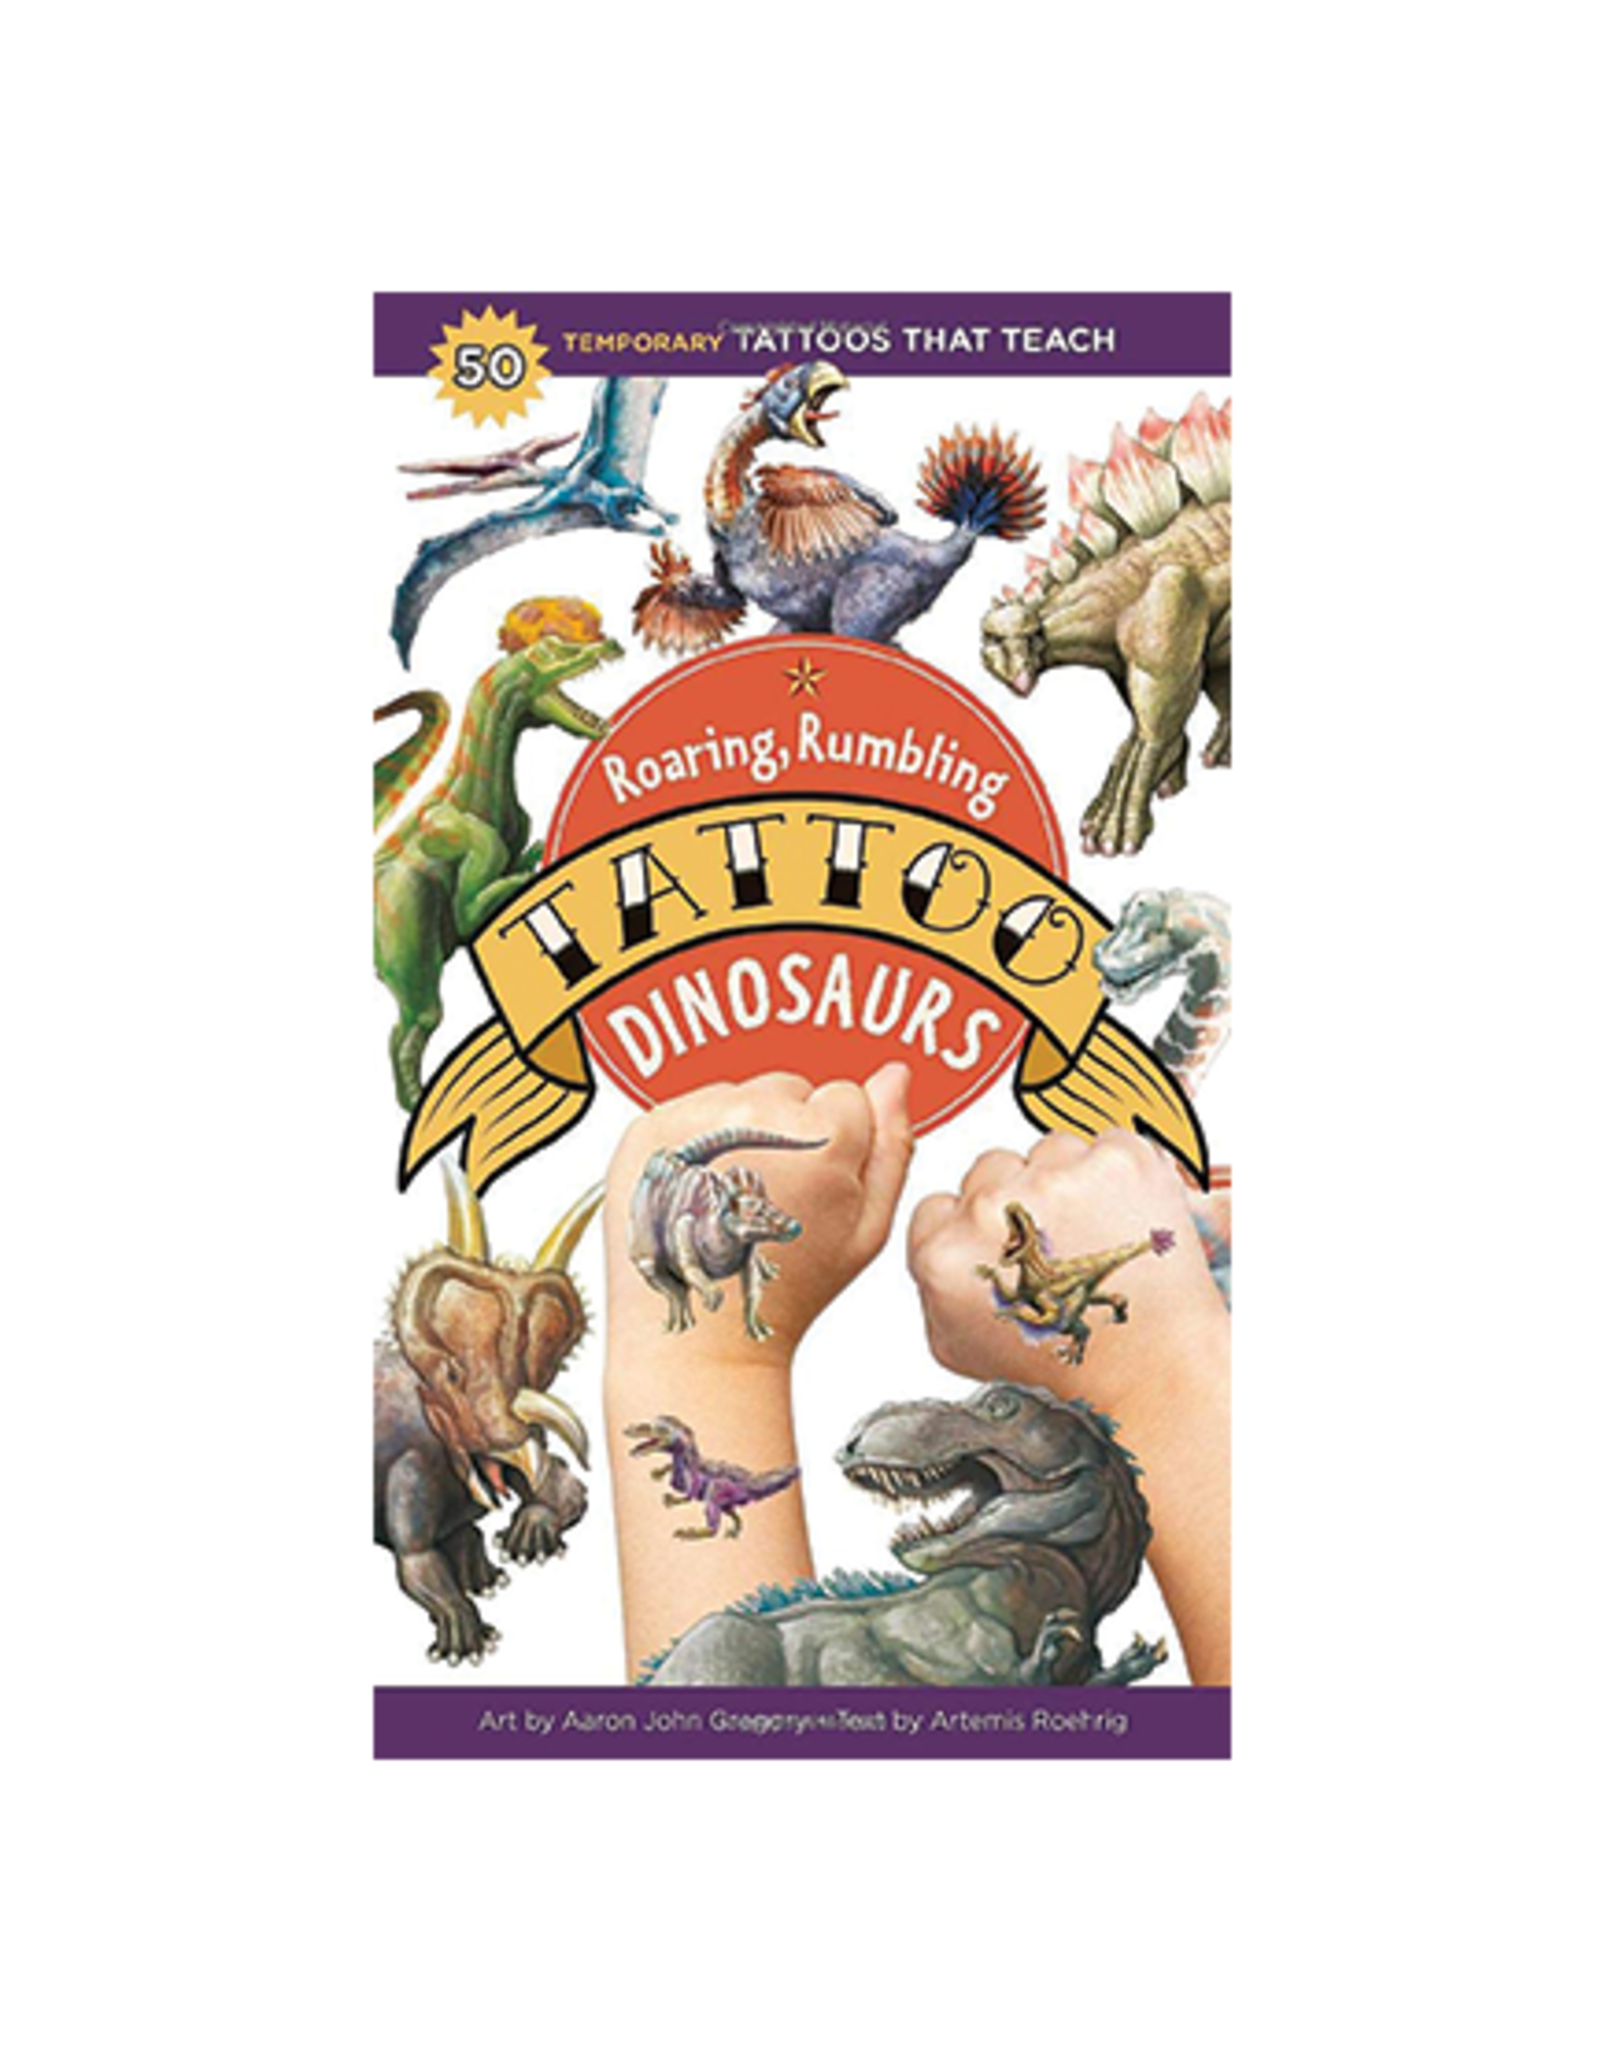 Roaring, Rumbling Tattoo Dinosaurs: 50 Temporary Tattoos That Teach